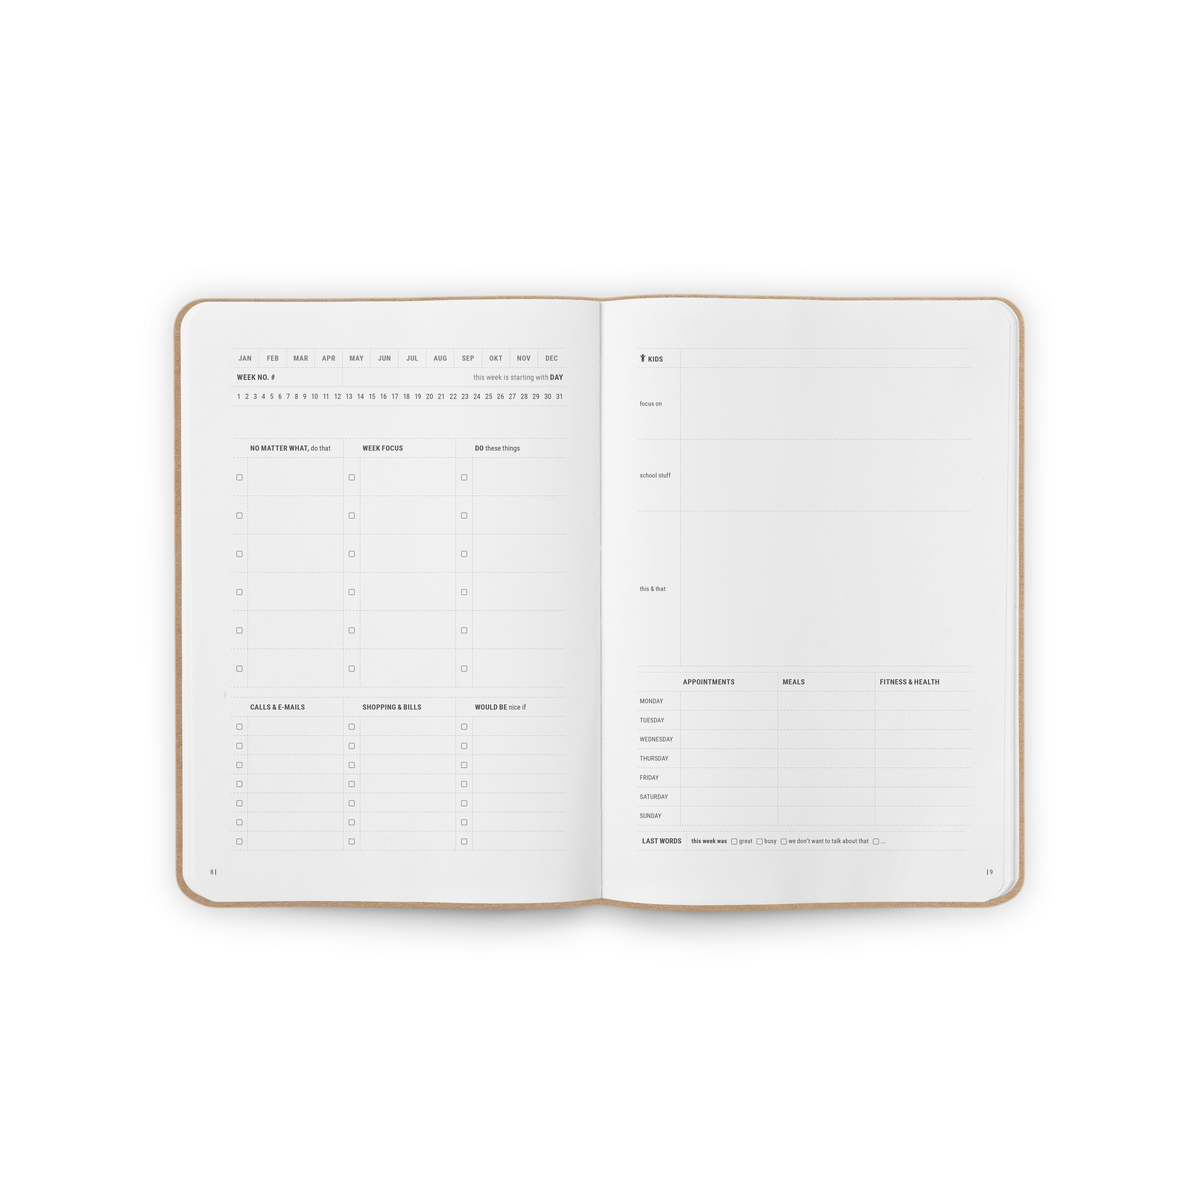 B-102_Family_Organization_Notebook_Stationery_Spread